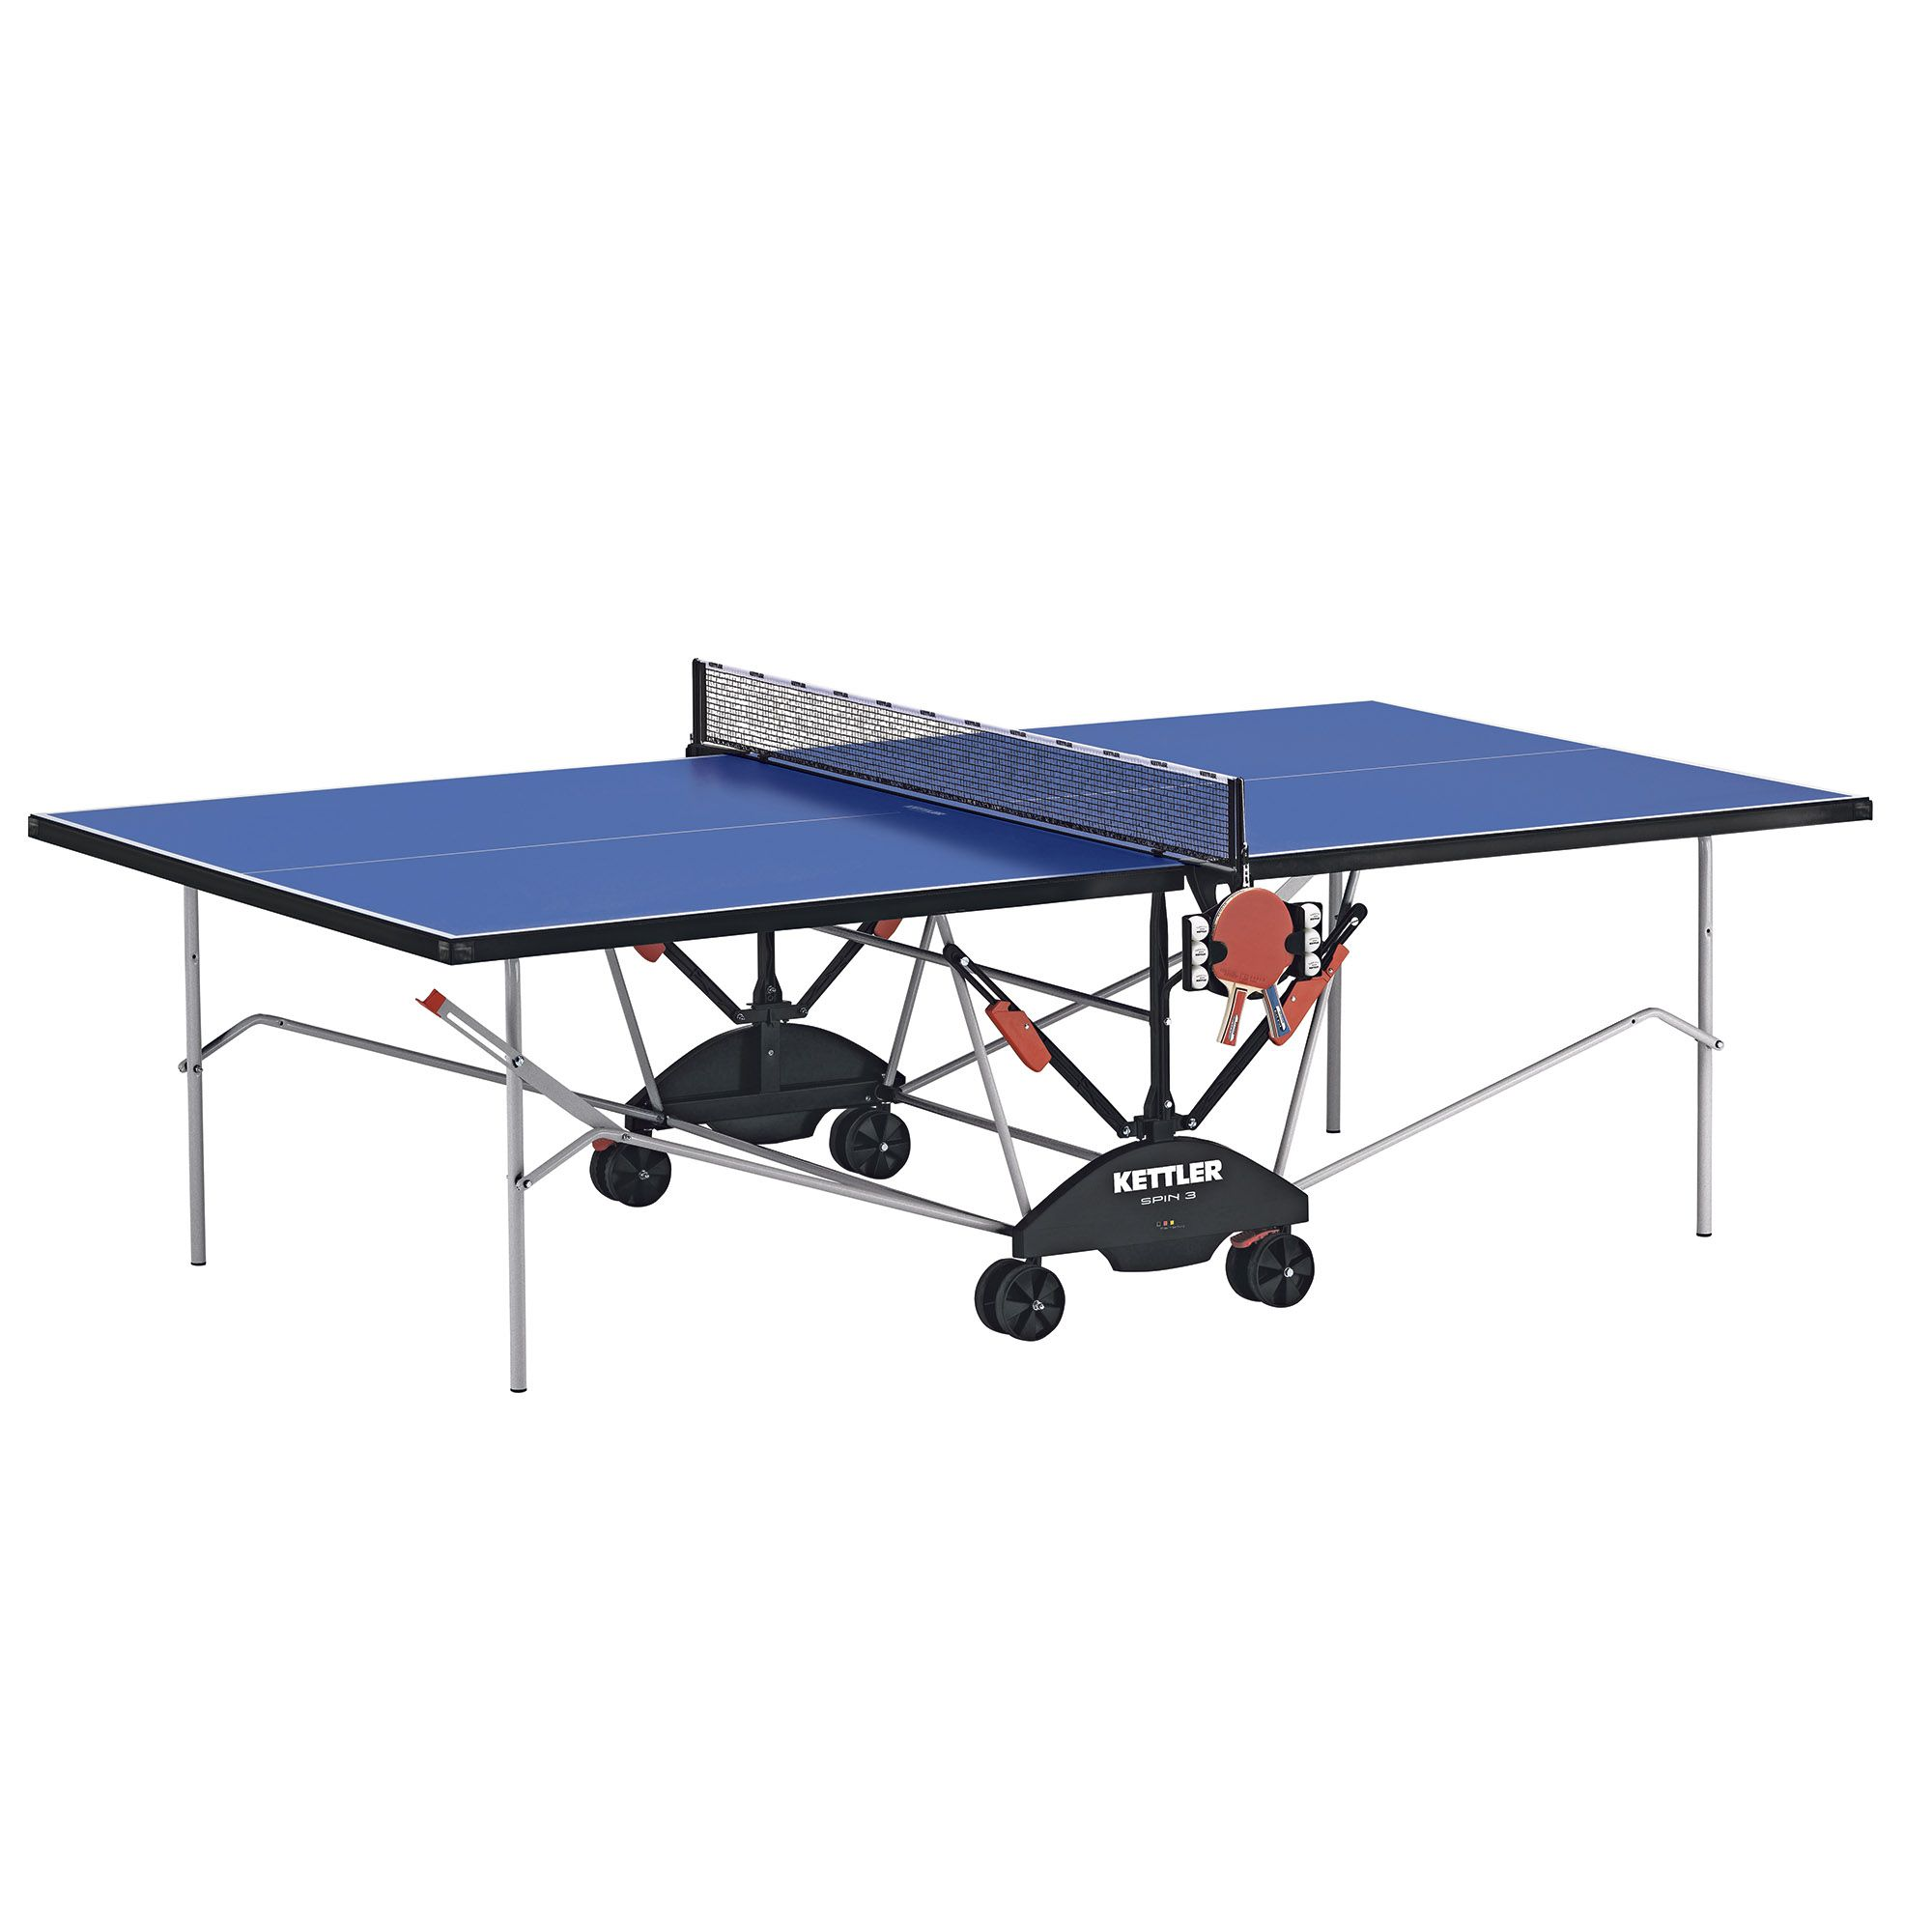 Kettler spin 3 0 indoor table tennis table for Table kettler